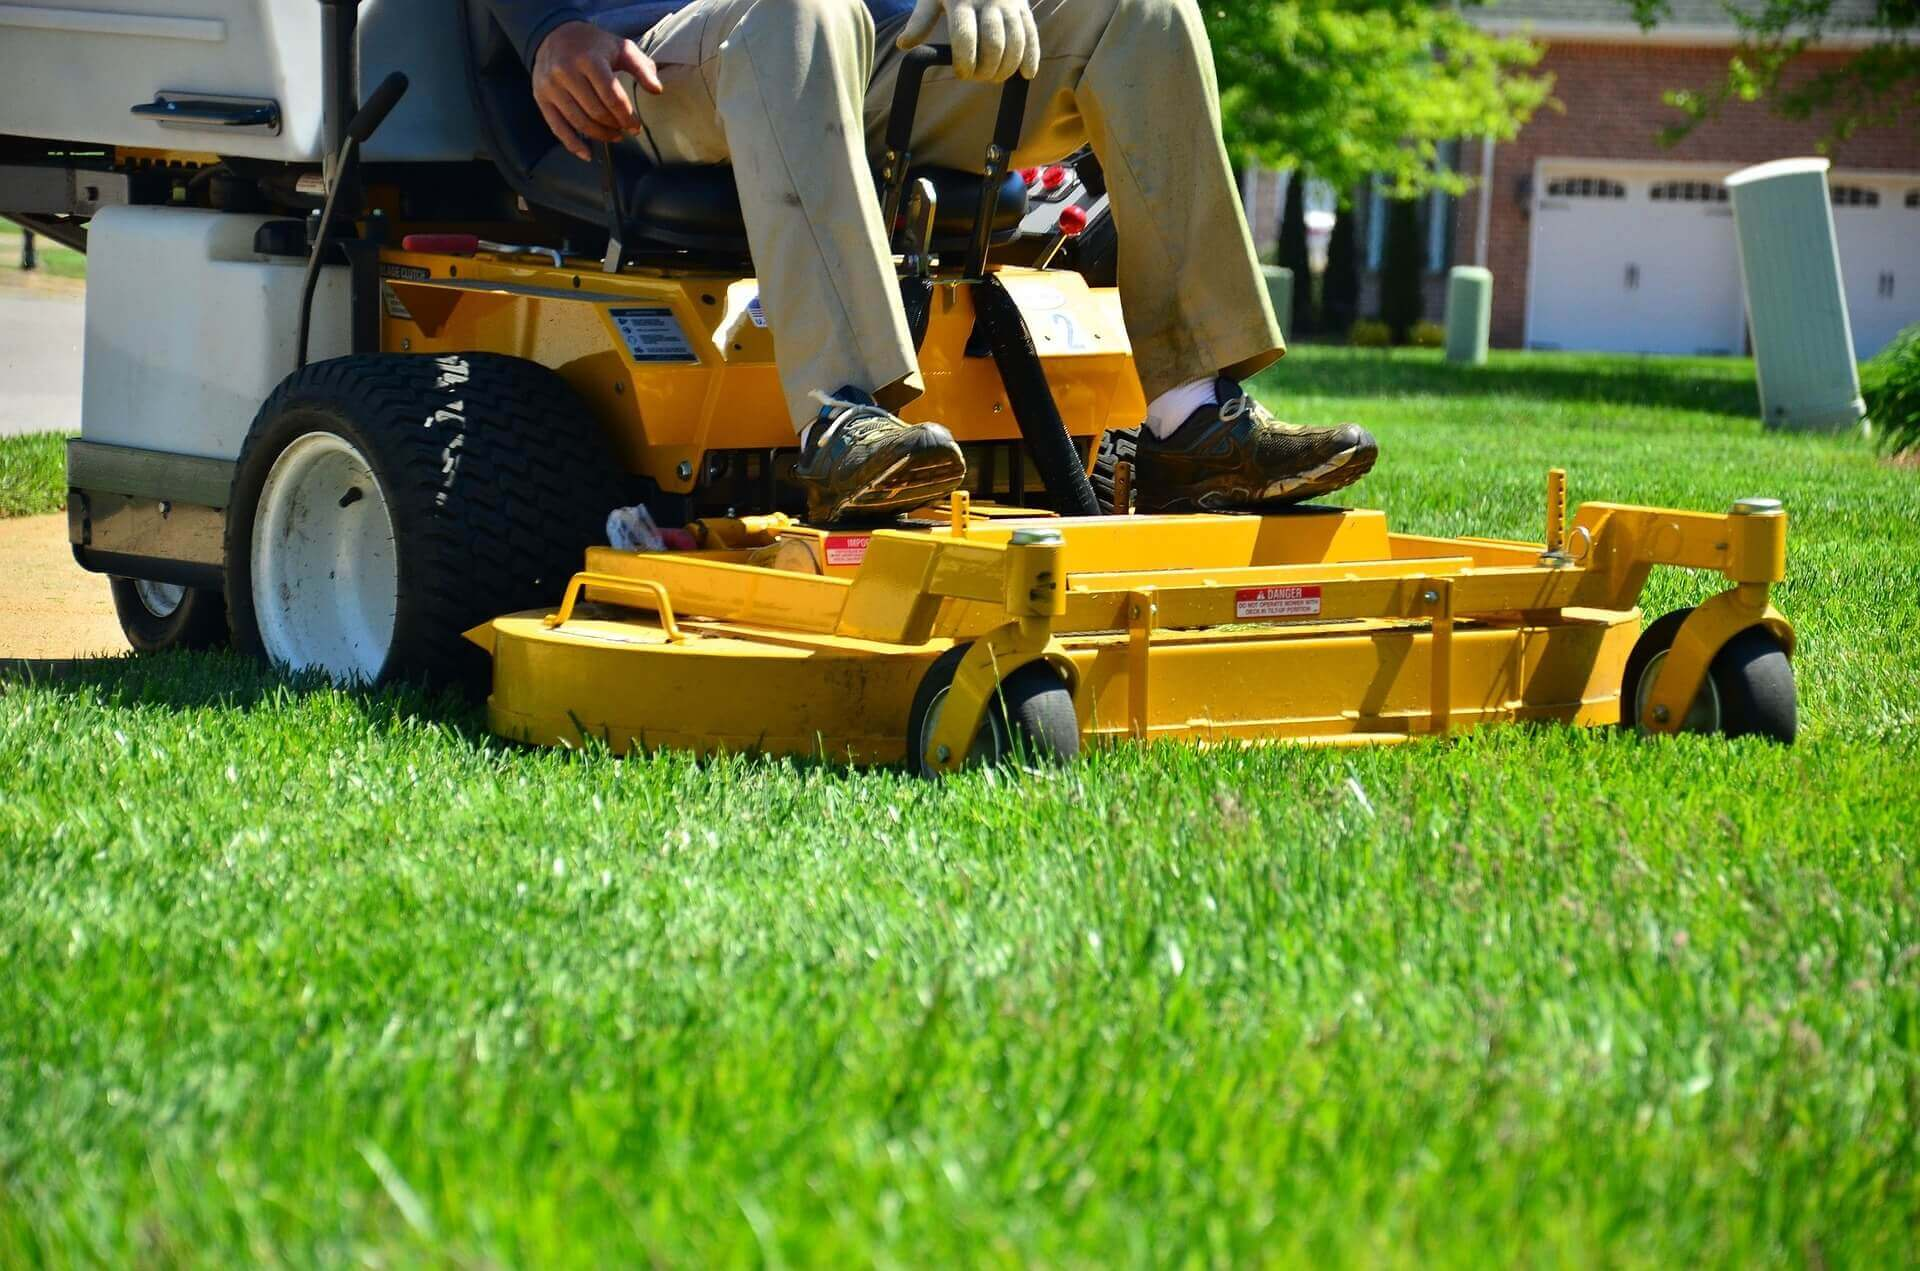 Riding lawn mower on grass